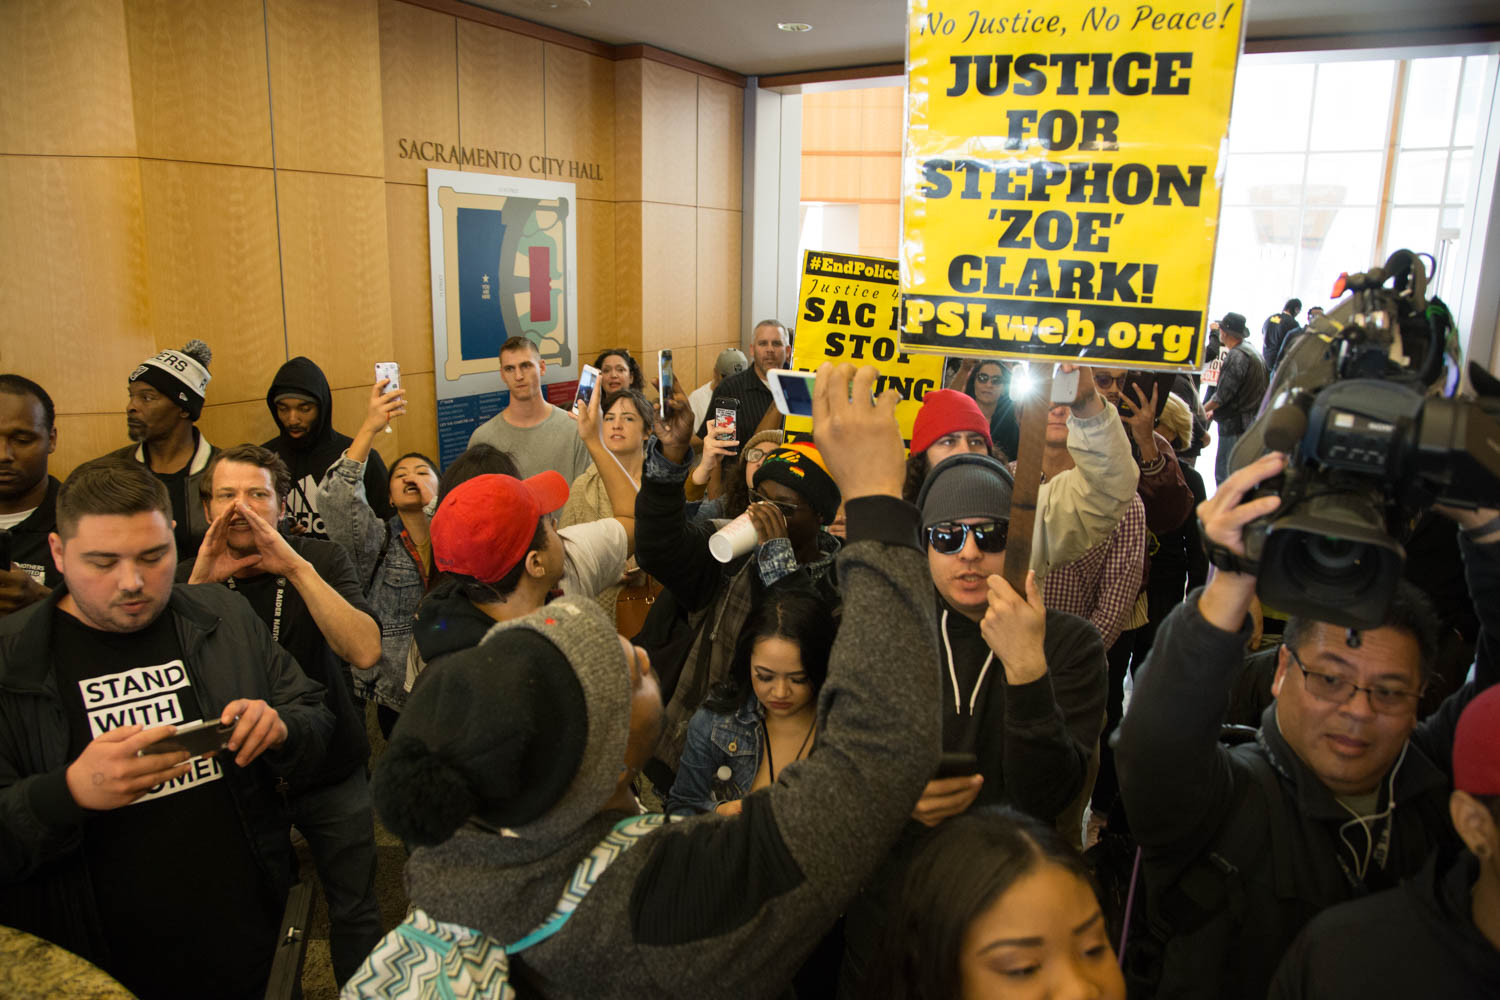 Stephon Clark was shot 7 times from behind, private autopsy finds